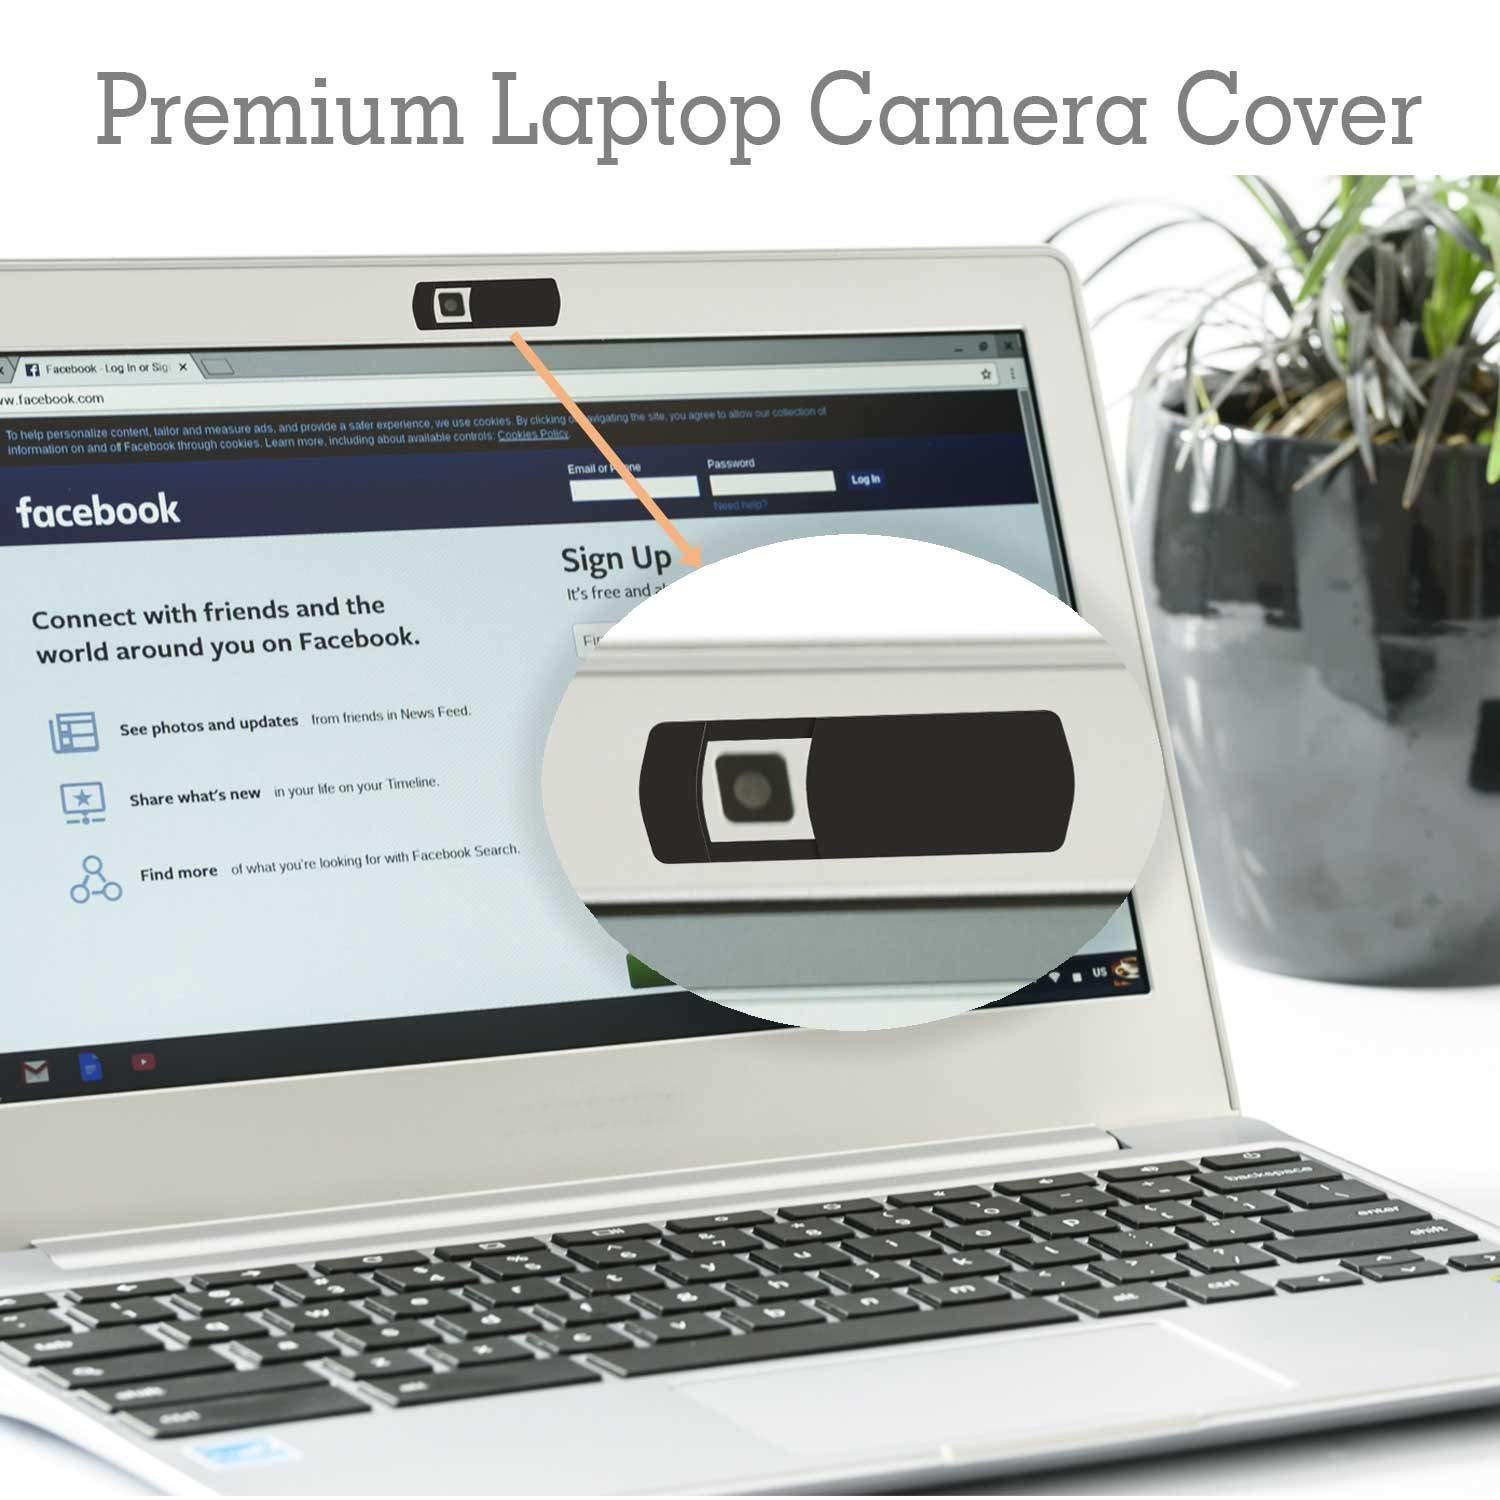 Webcam Cover-Laptop Camera Cover,Webcam Cover Slide,Large Design Strong Stickability Laptop Webcam Cover for Phone Laptops Mac Books PCs Tablets Smartphones Covers Your Camera for Privacy Security -3